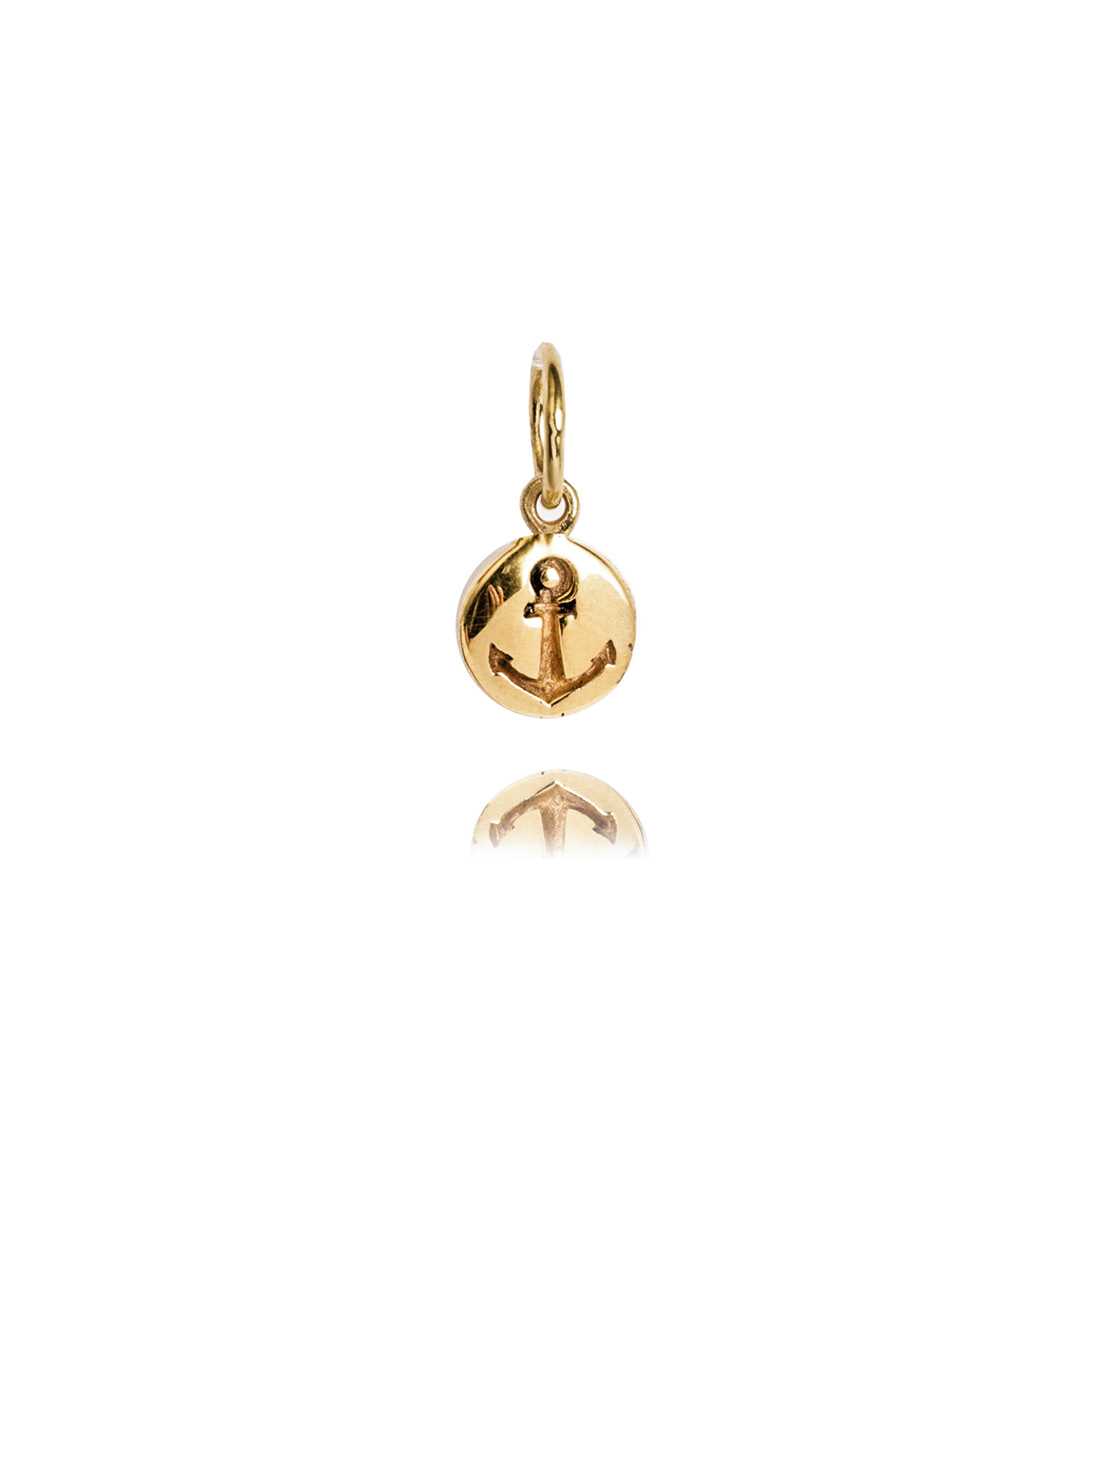 Gold anchor charm tilly sveaas jewellery gold anchor disc aloadofball